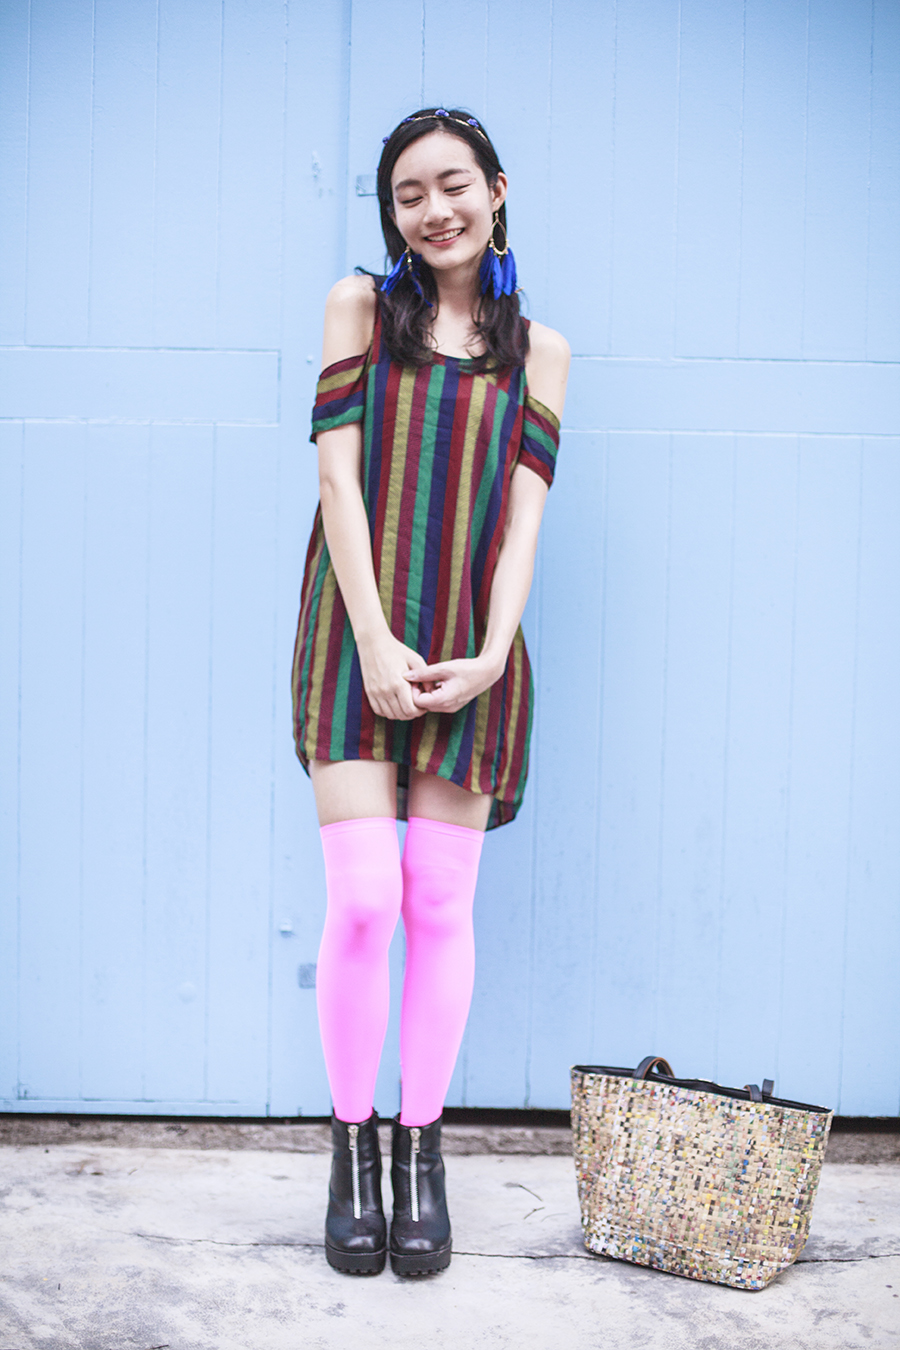 Bohemian Rhapsody Outfit: Urban Outfitters striped off-shoulder dress, We Love Colors neon pink thigh high stockings, Rubi black platform zipper boots, paper floral headband from Bangkok, H&M blue feather hoop earrings, manga strips tote bag from Hong Kong.